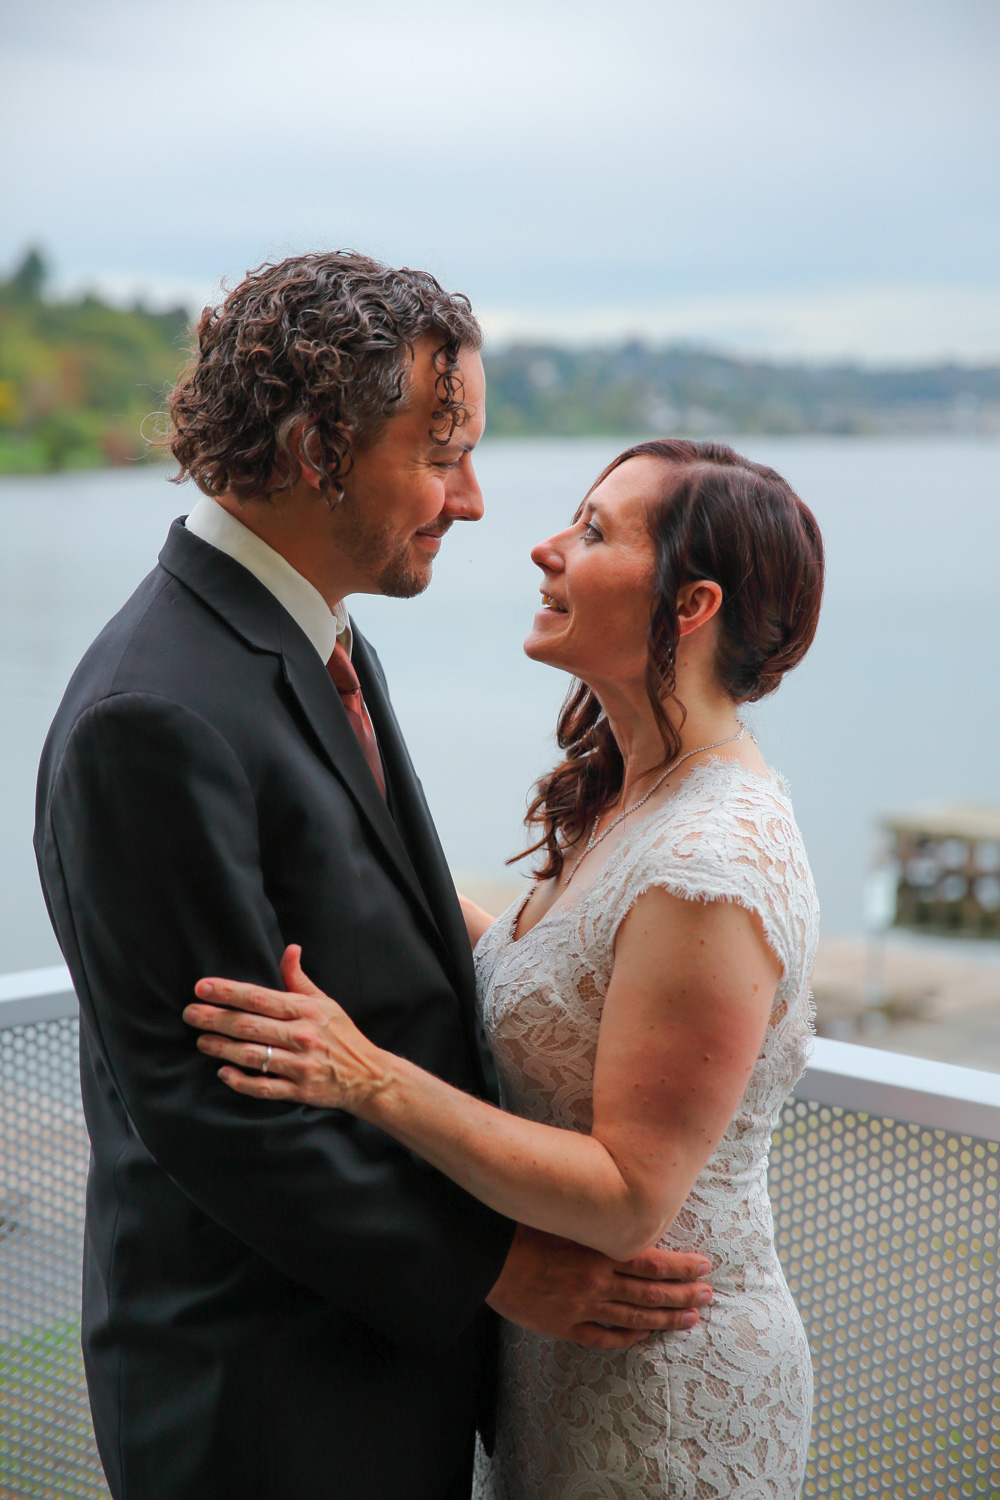 Wedding Mt Baker Rowing Club Seattle Washington 01.jpg